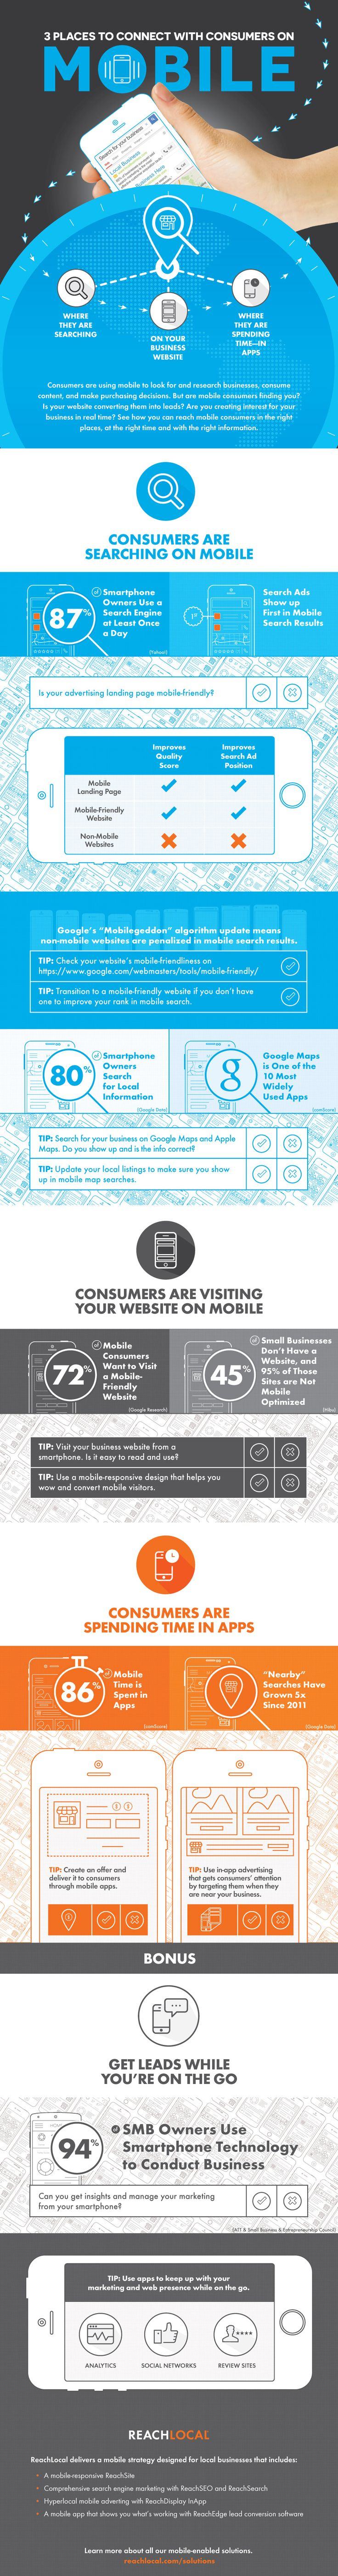 3 Places Small Businesses Can Connect with Consumers on Mobile - #Infographic #SEO